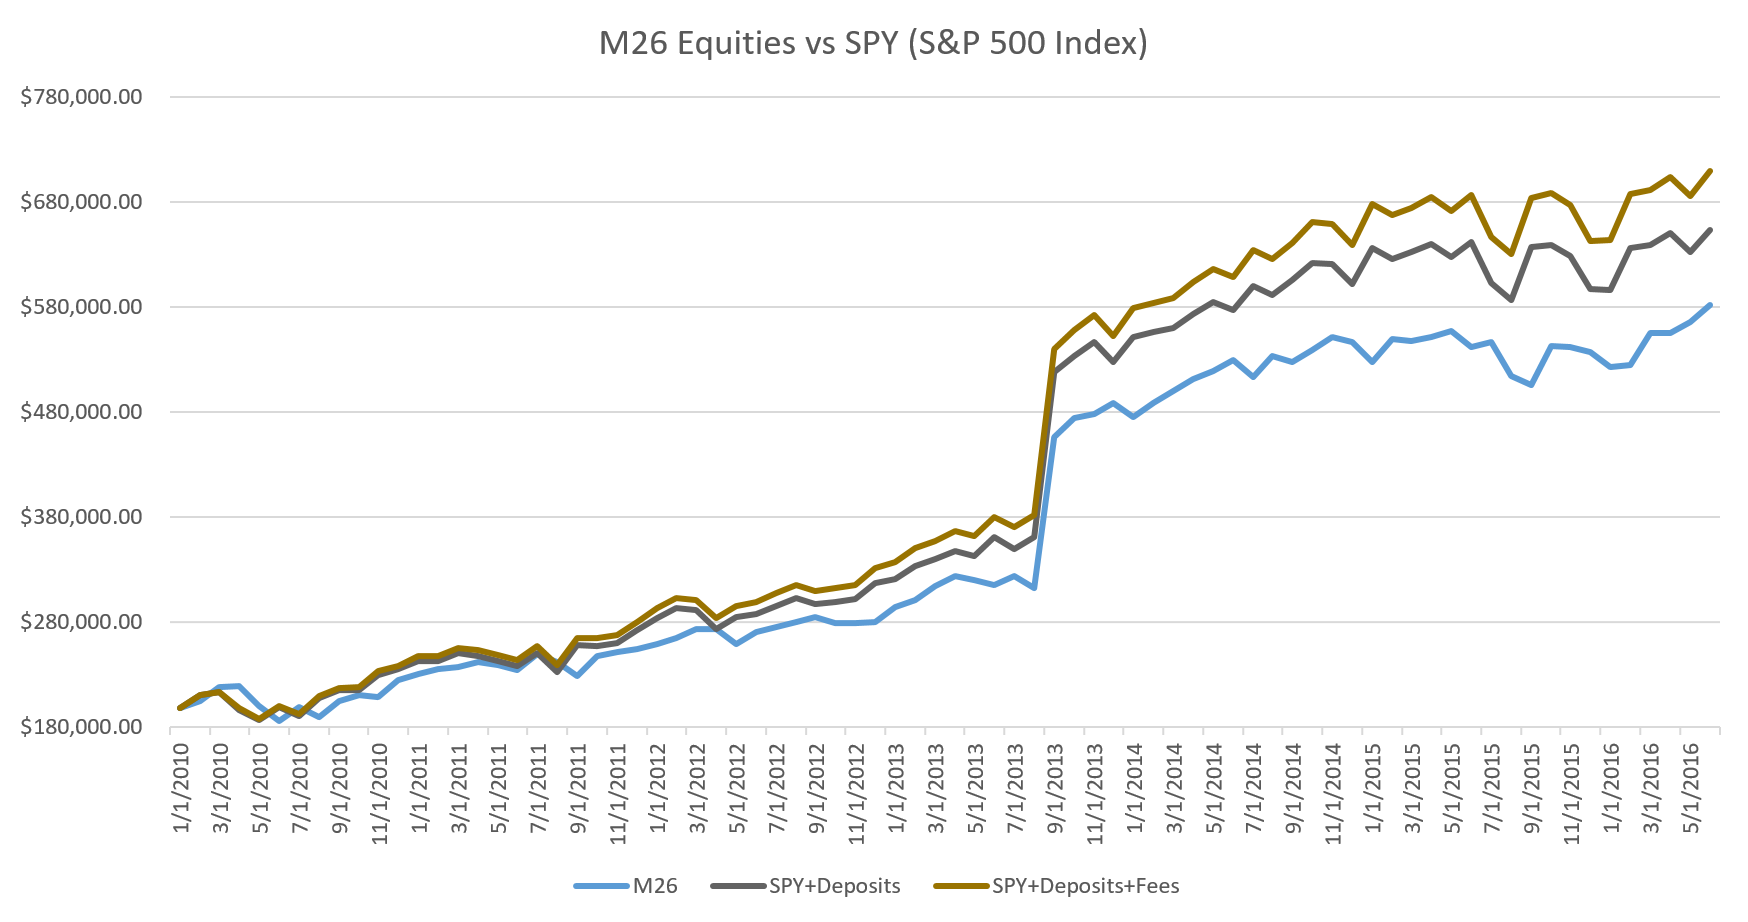 M26 performance vs SPY and SPY with advisor fees over 6.5 years